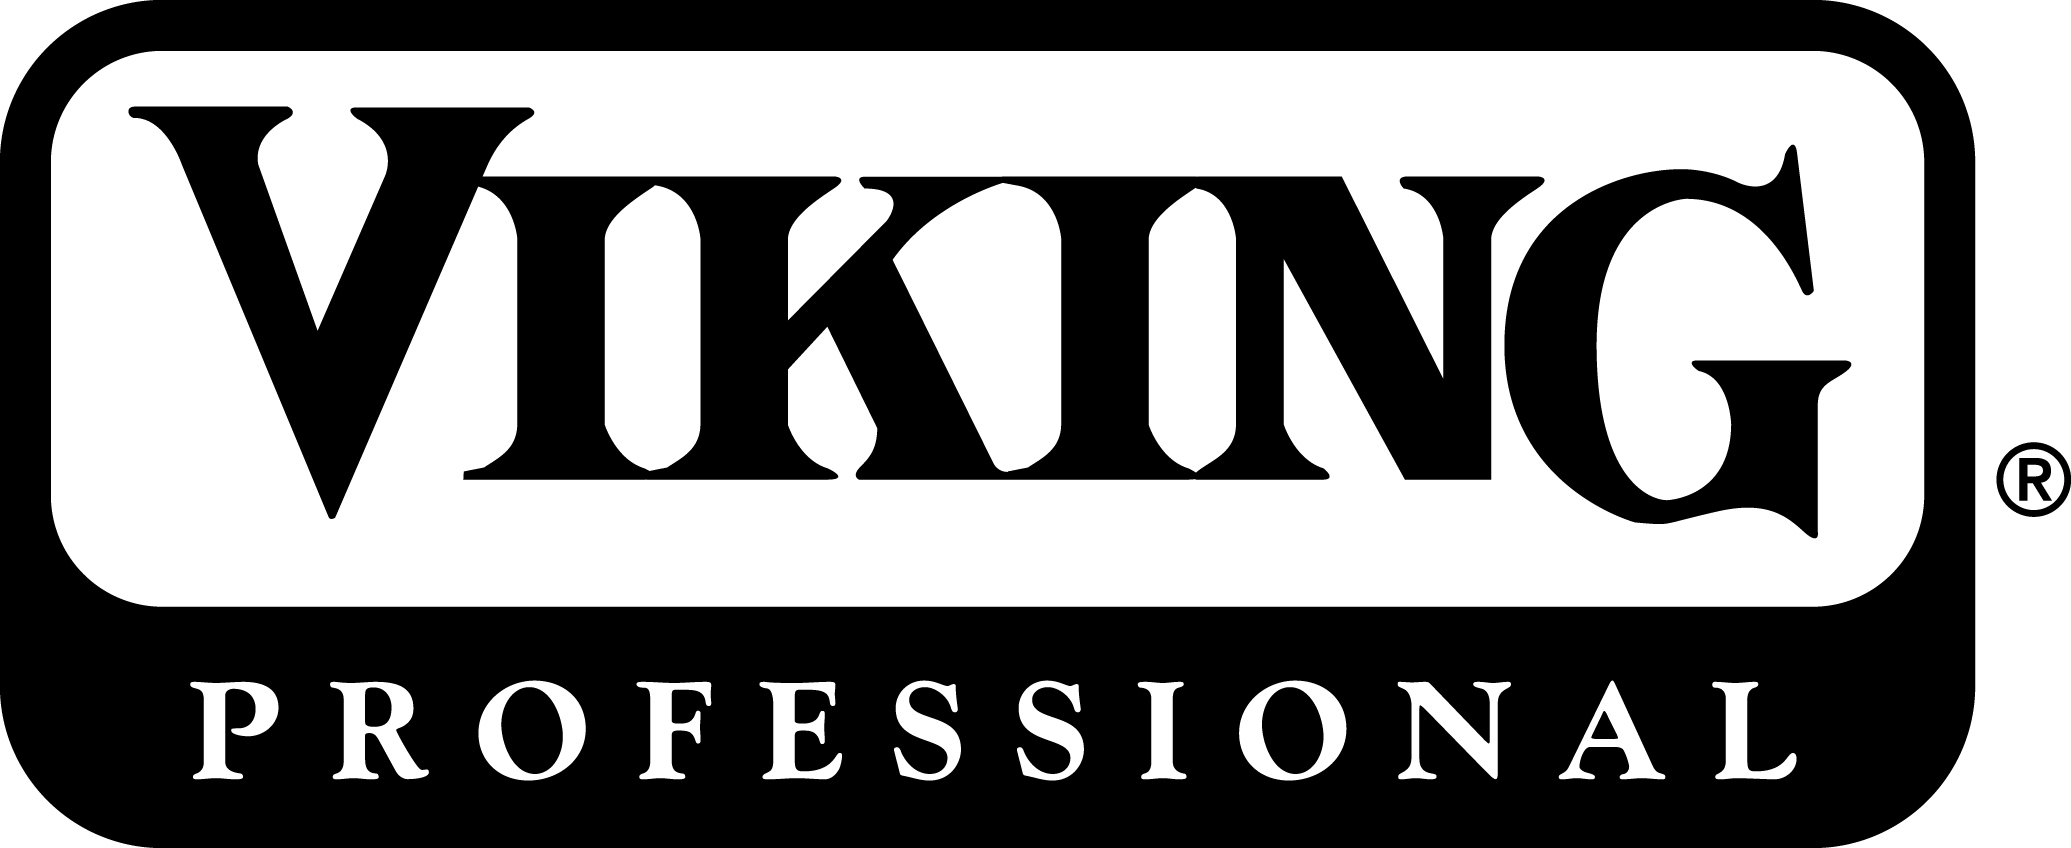 Viking Local Fridge Repair, Whirlpool Washer Repair Technician